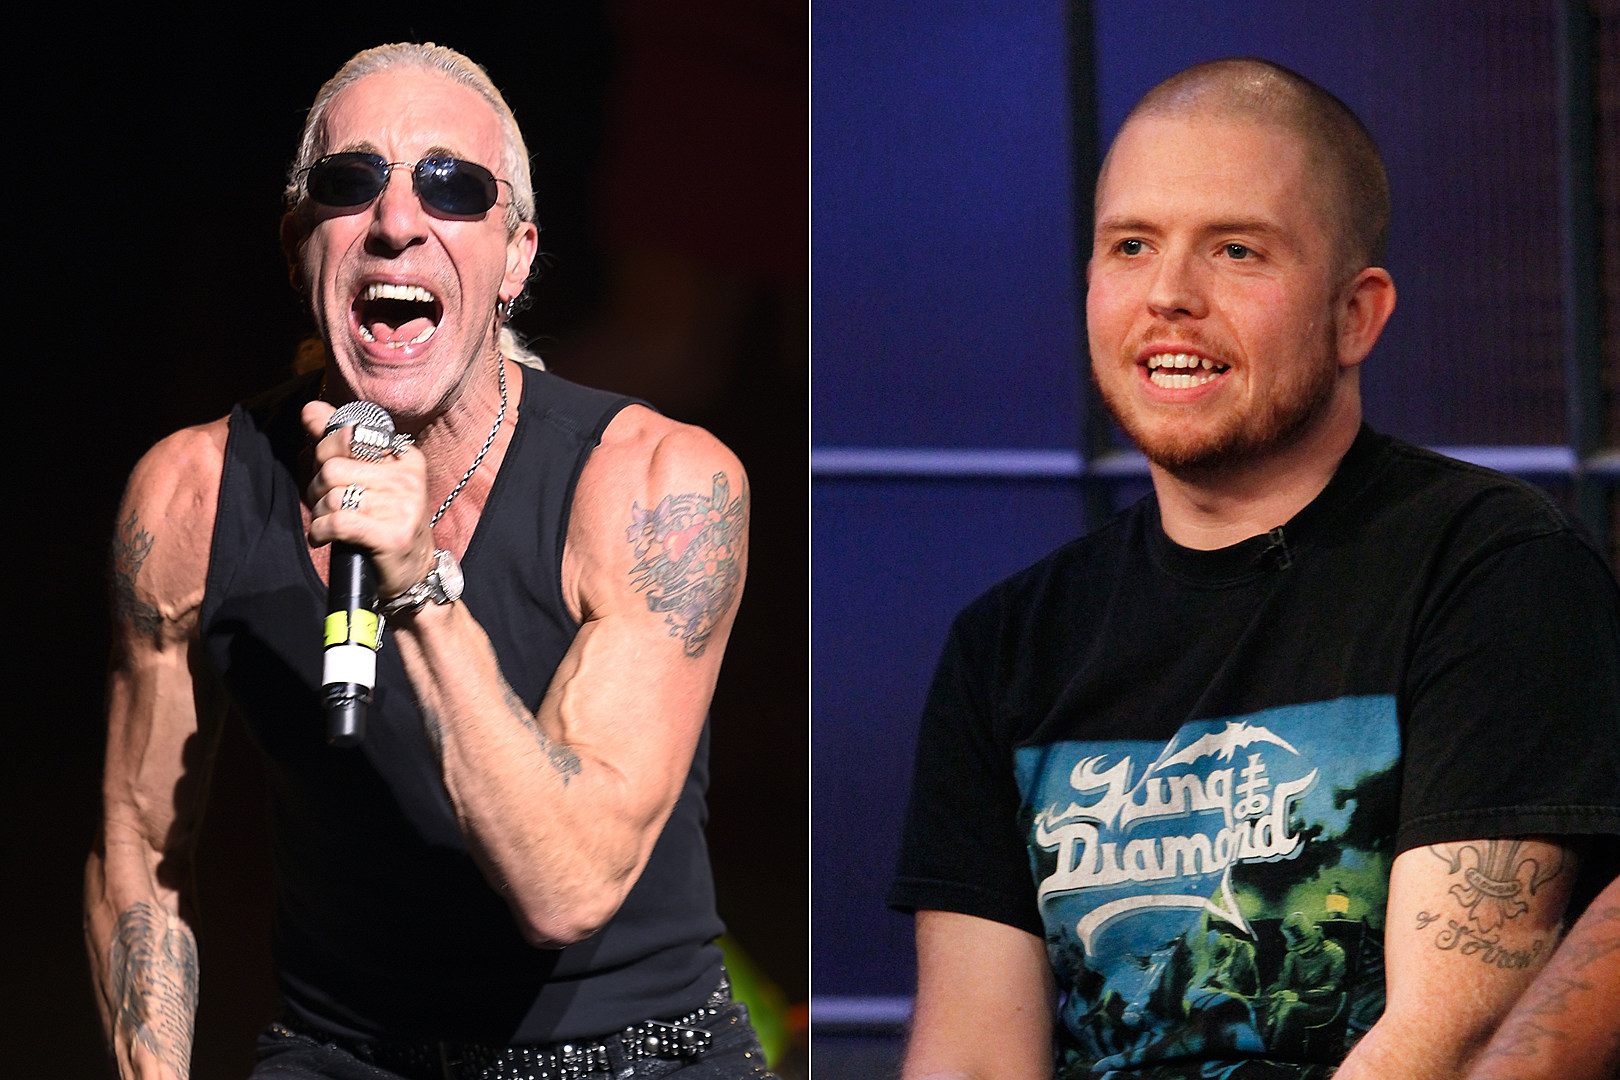 Twisted Sister's Dee Snider + Hatebreed's Jamey Jasta Pair Up for New Project